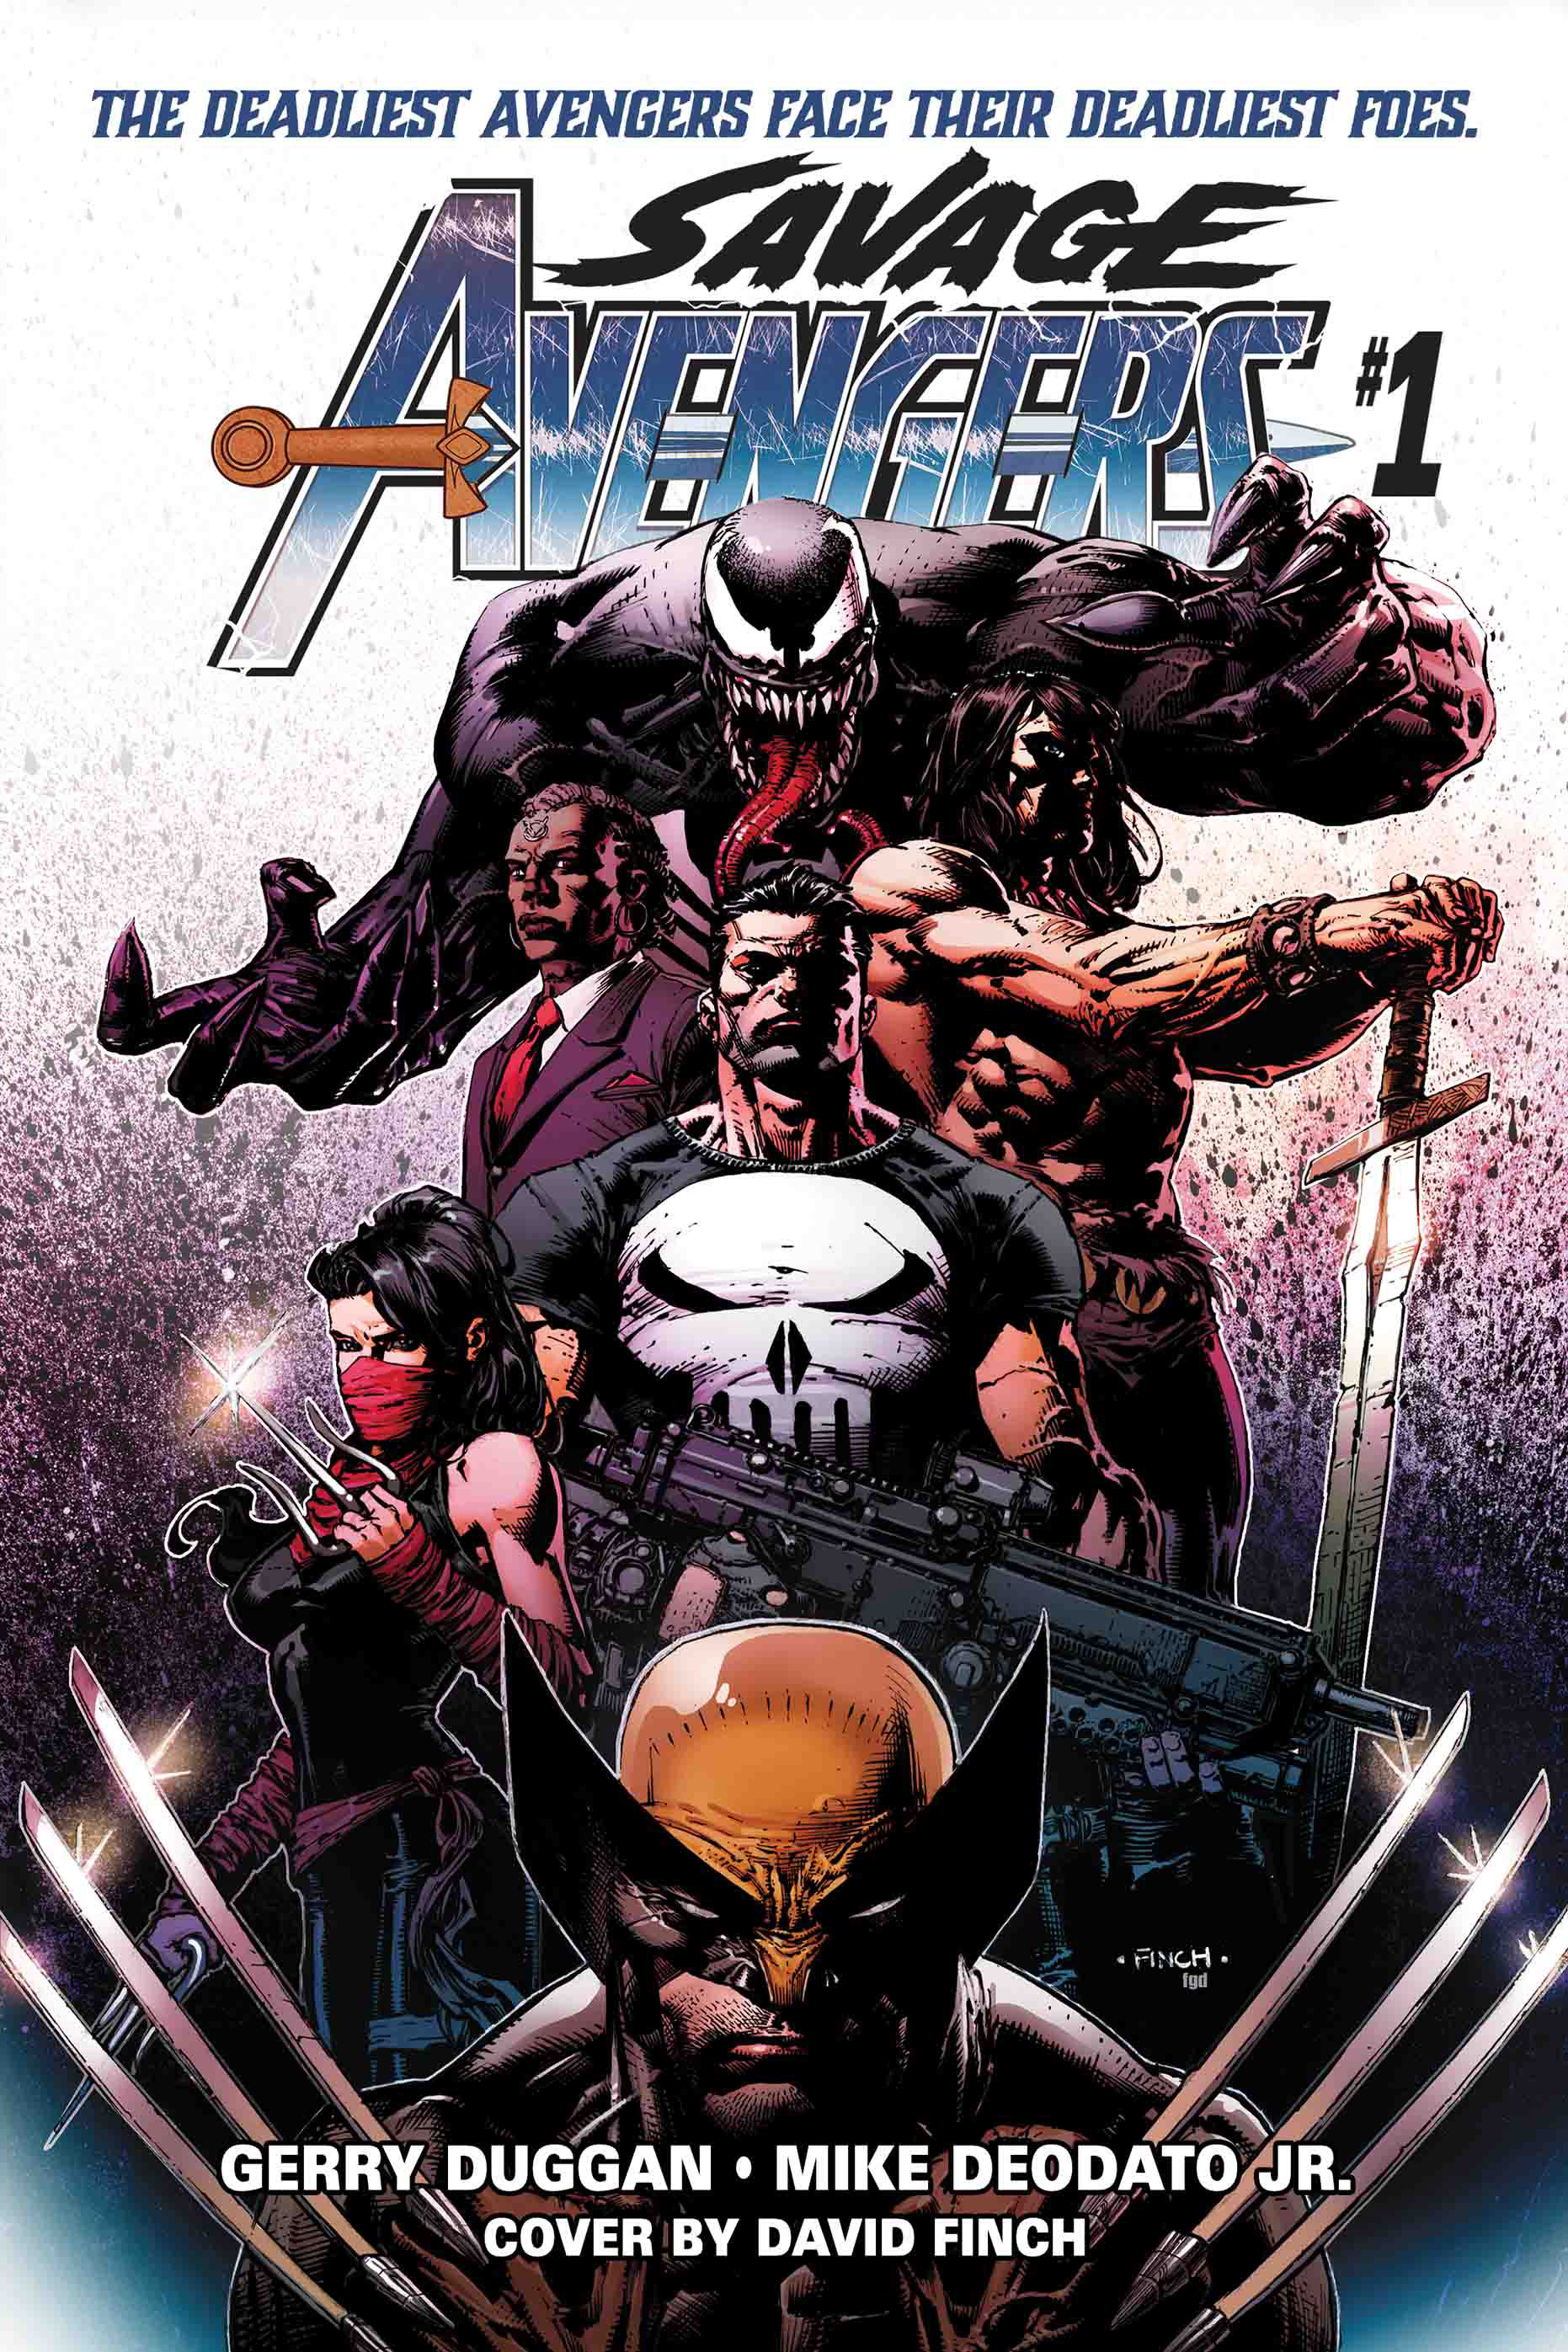 First Look: The Savage Avengers #1 featuring Conan, Wolverine, Venom, and more!